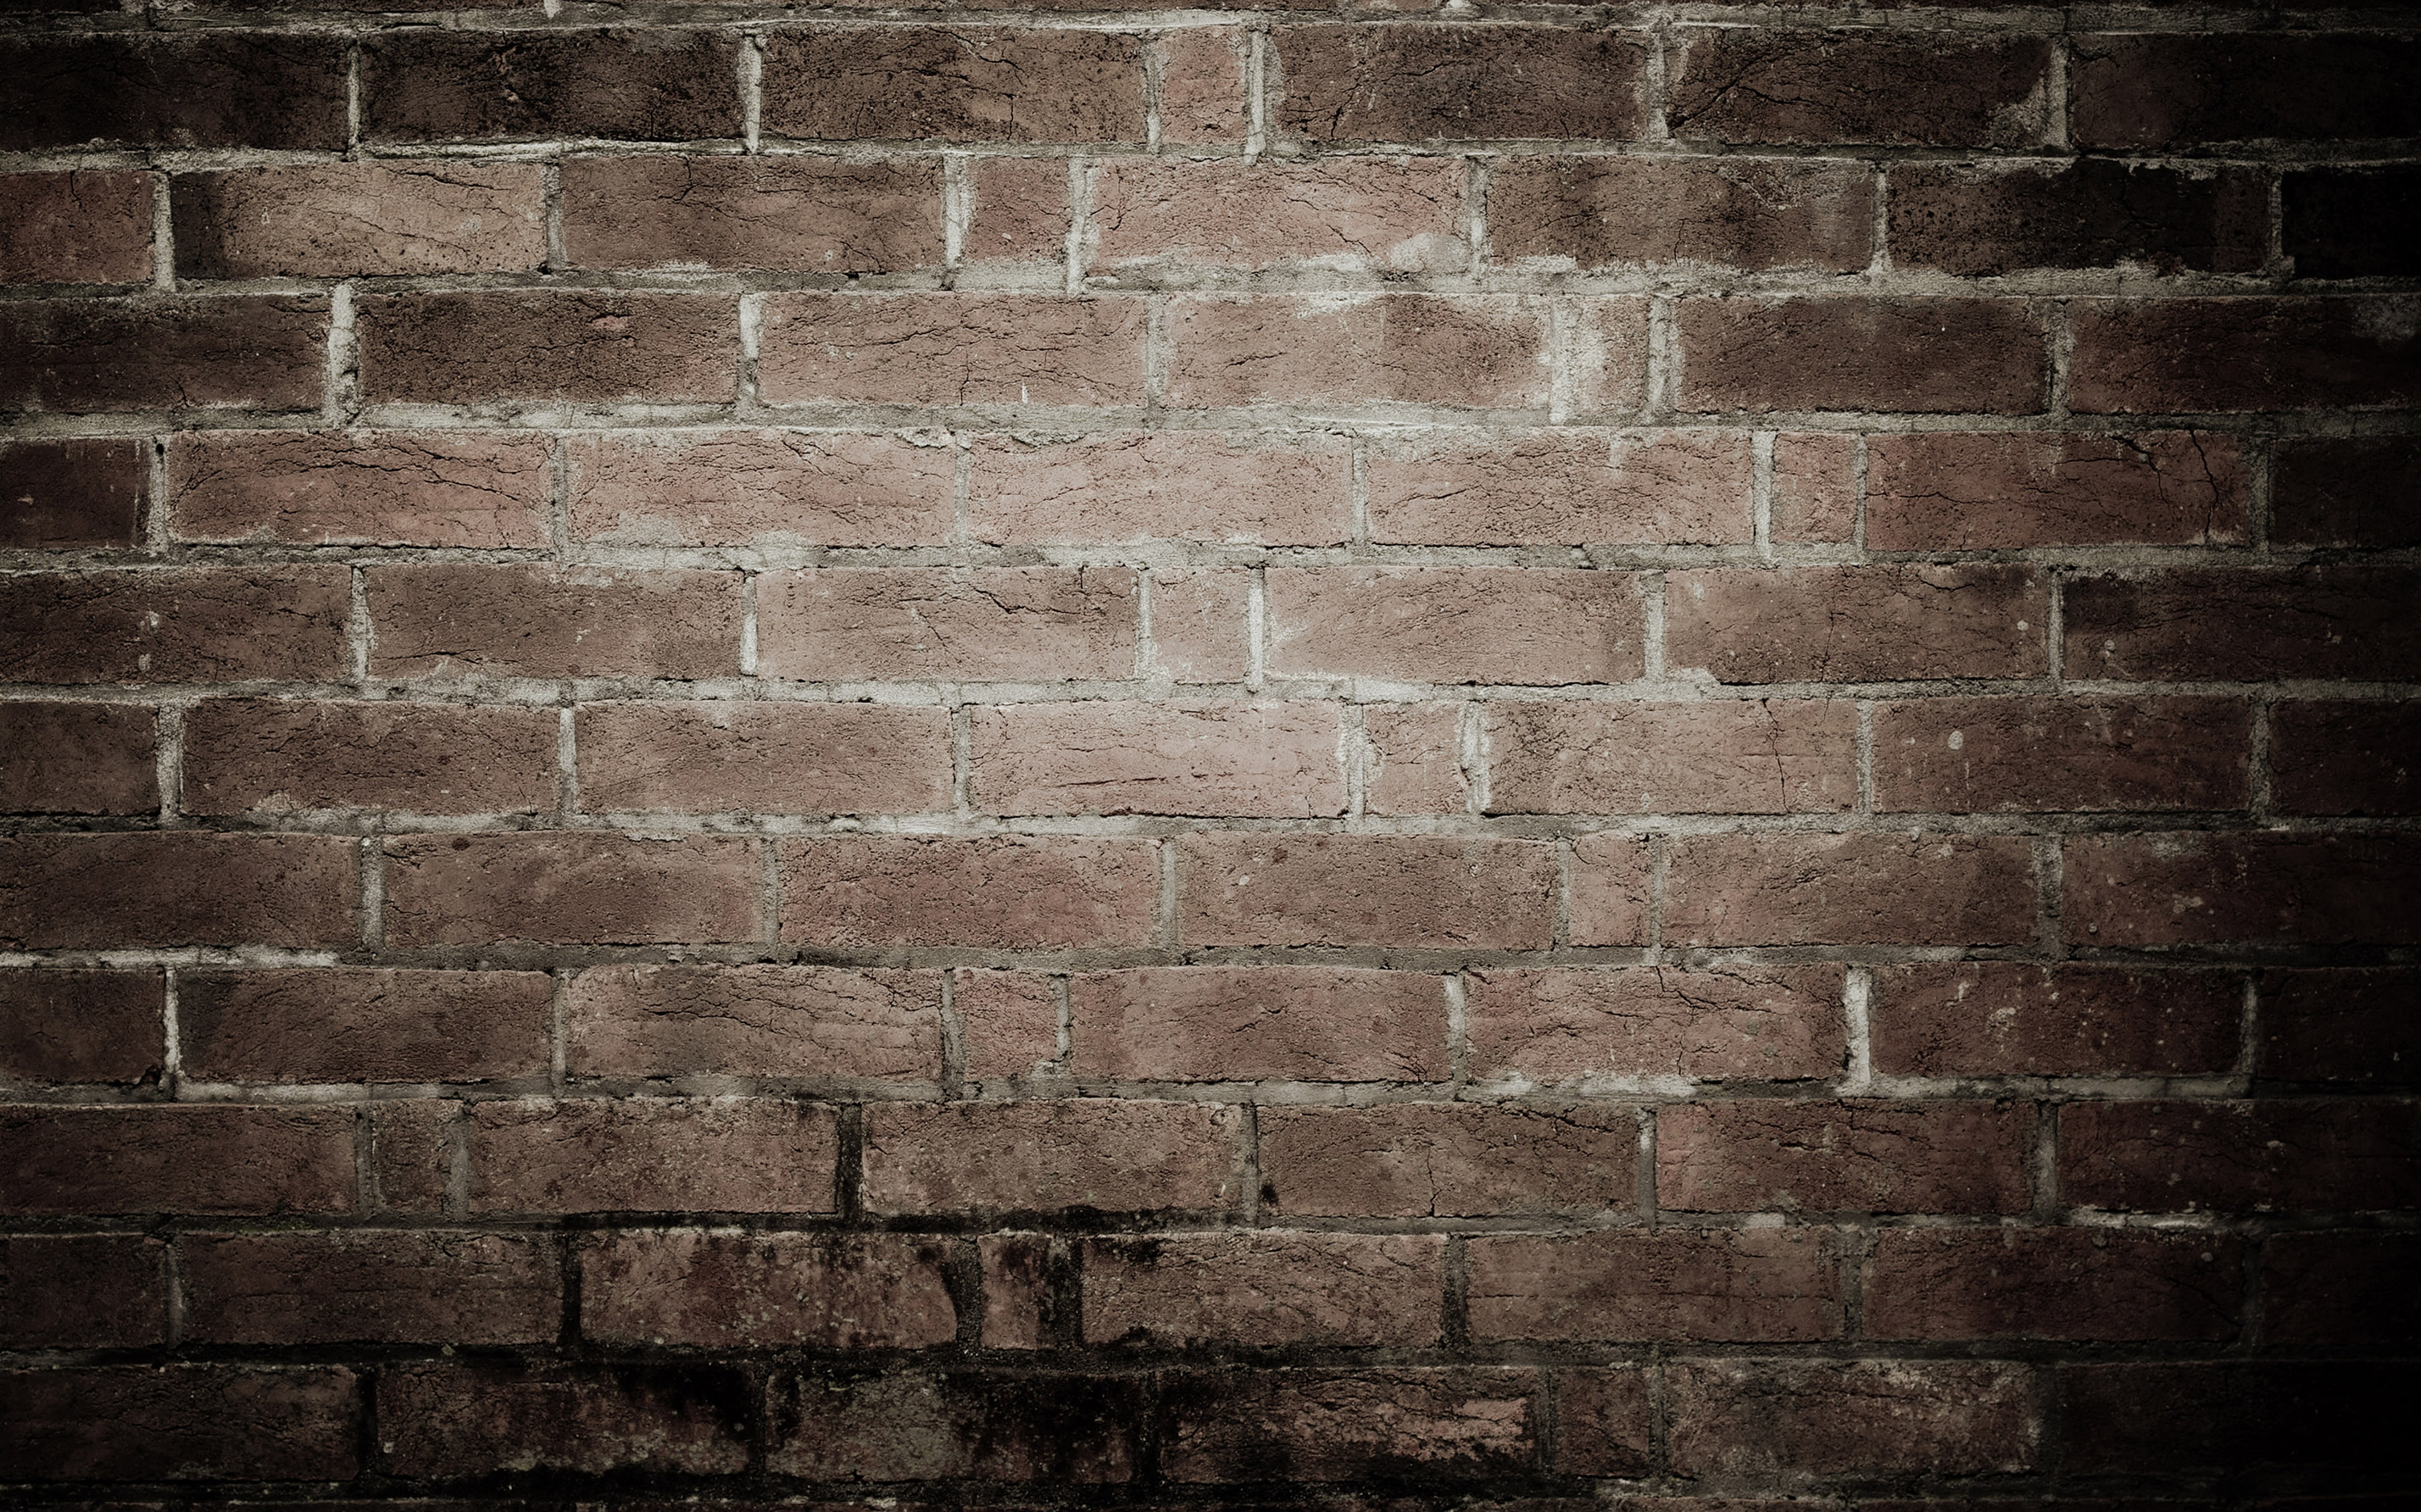 Old brick wall texture bricks brick wall texture for Wallpaper images for house walls